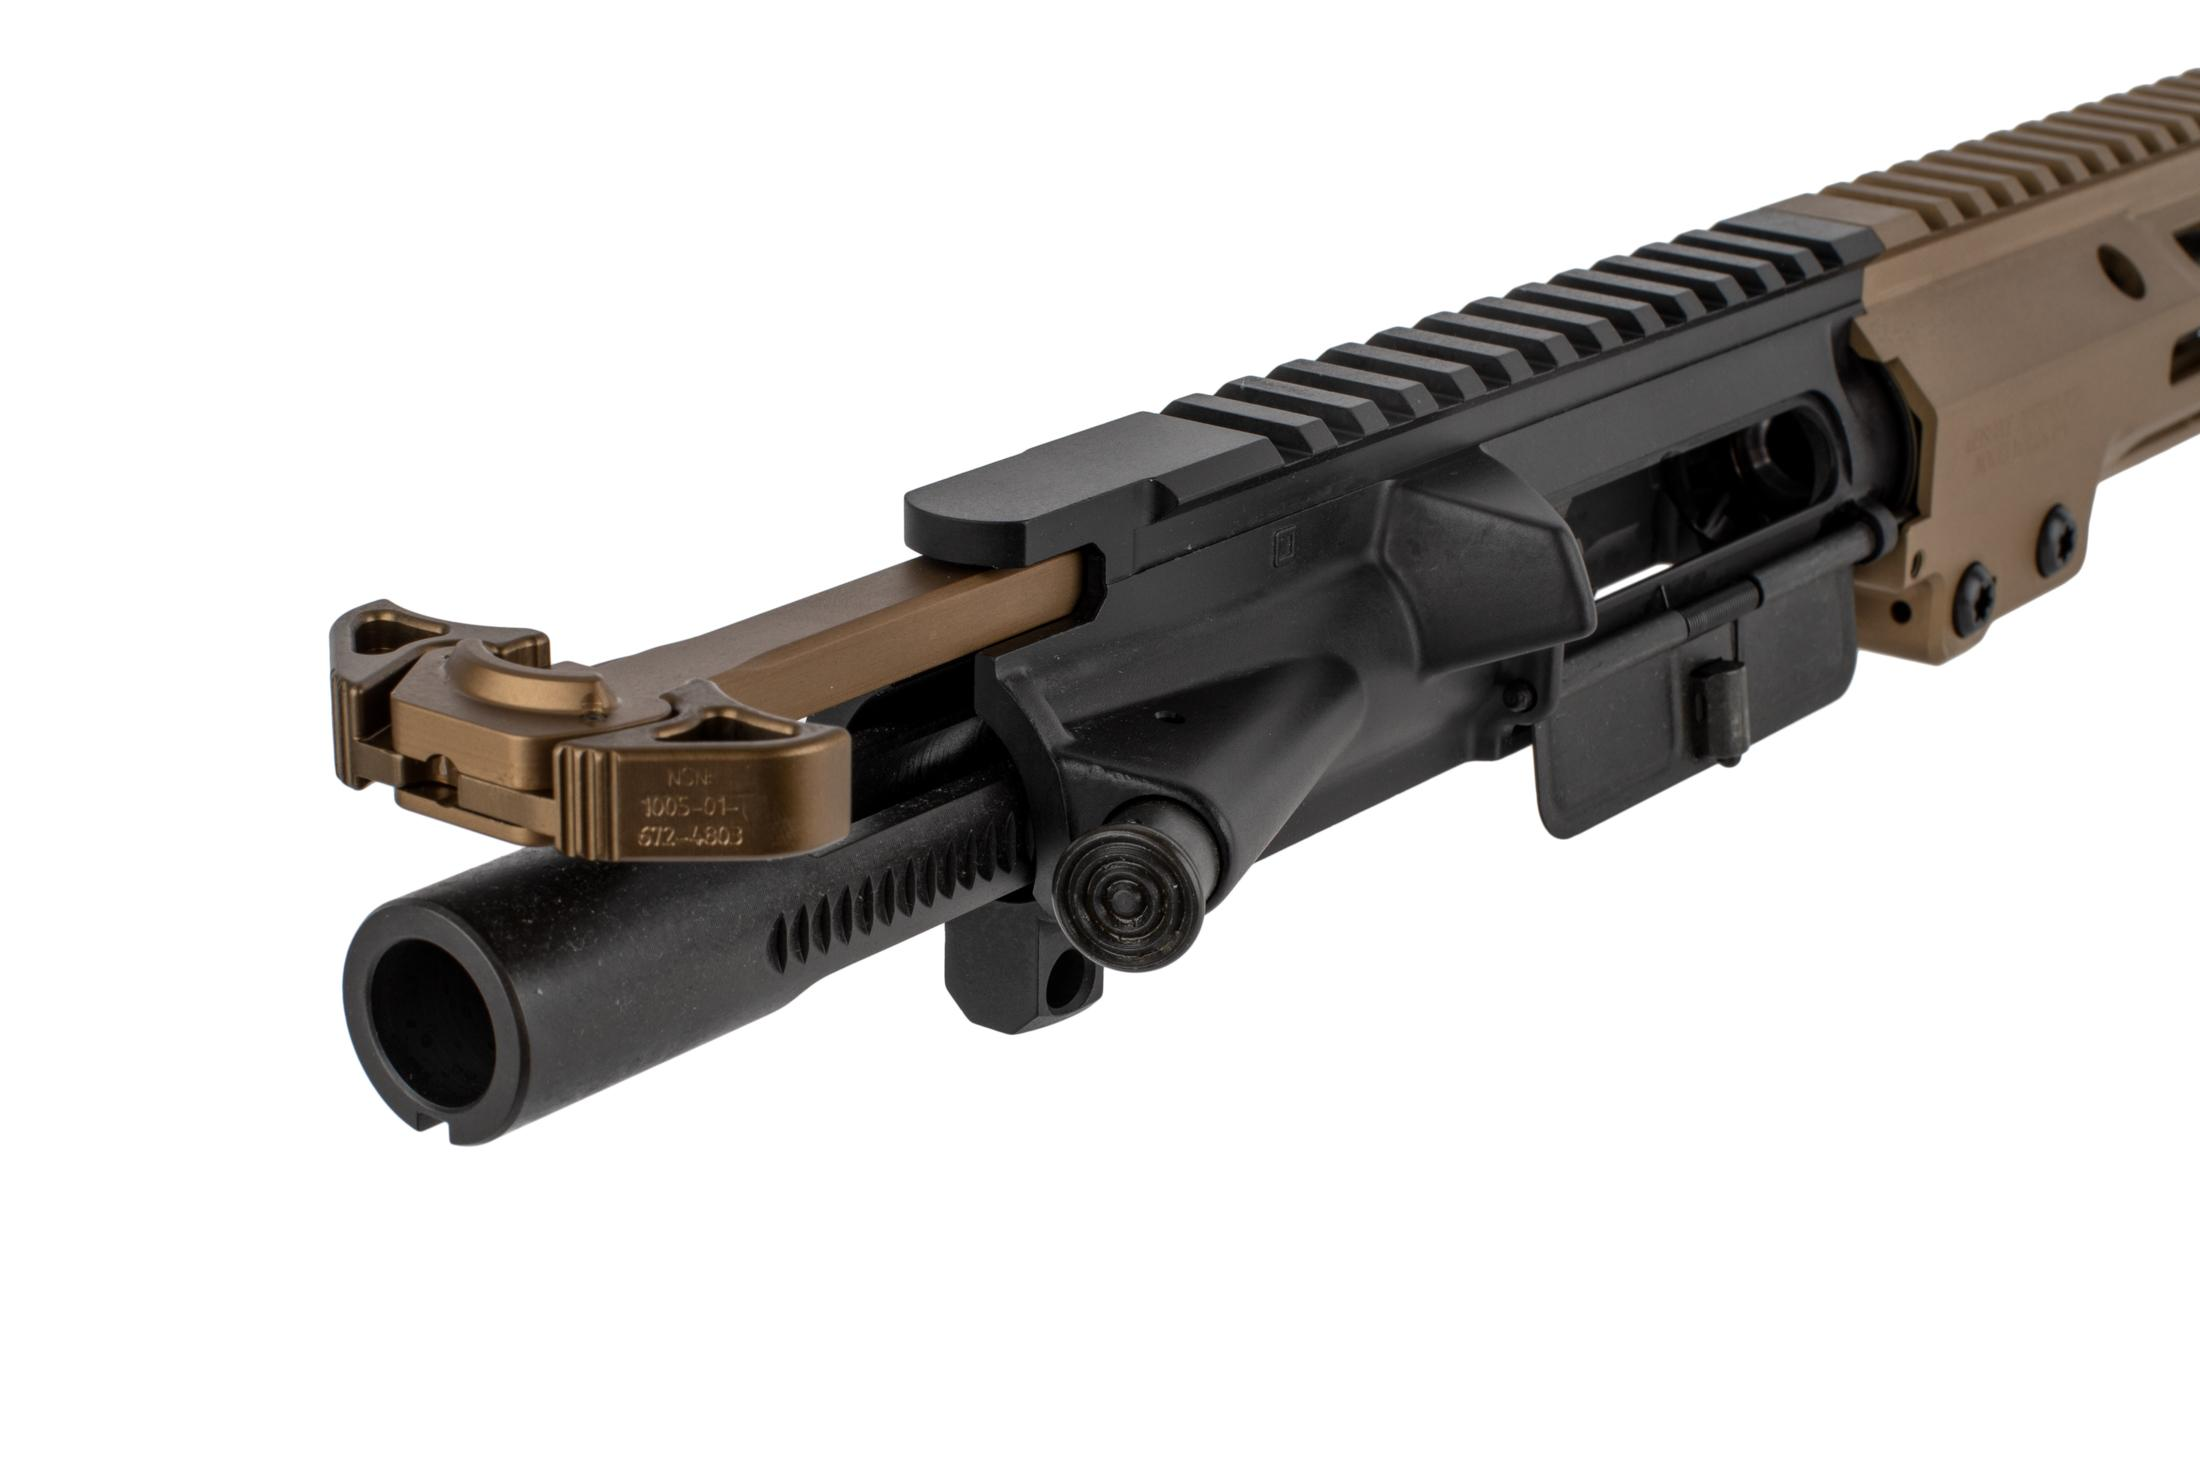 The Geissele Automatics near clone URGI complete upper receiver group comes with an Airborne charging handle and Mil-Spec BCG